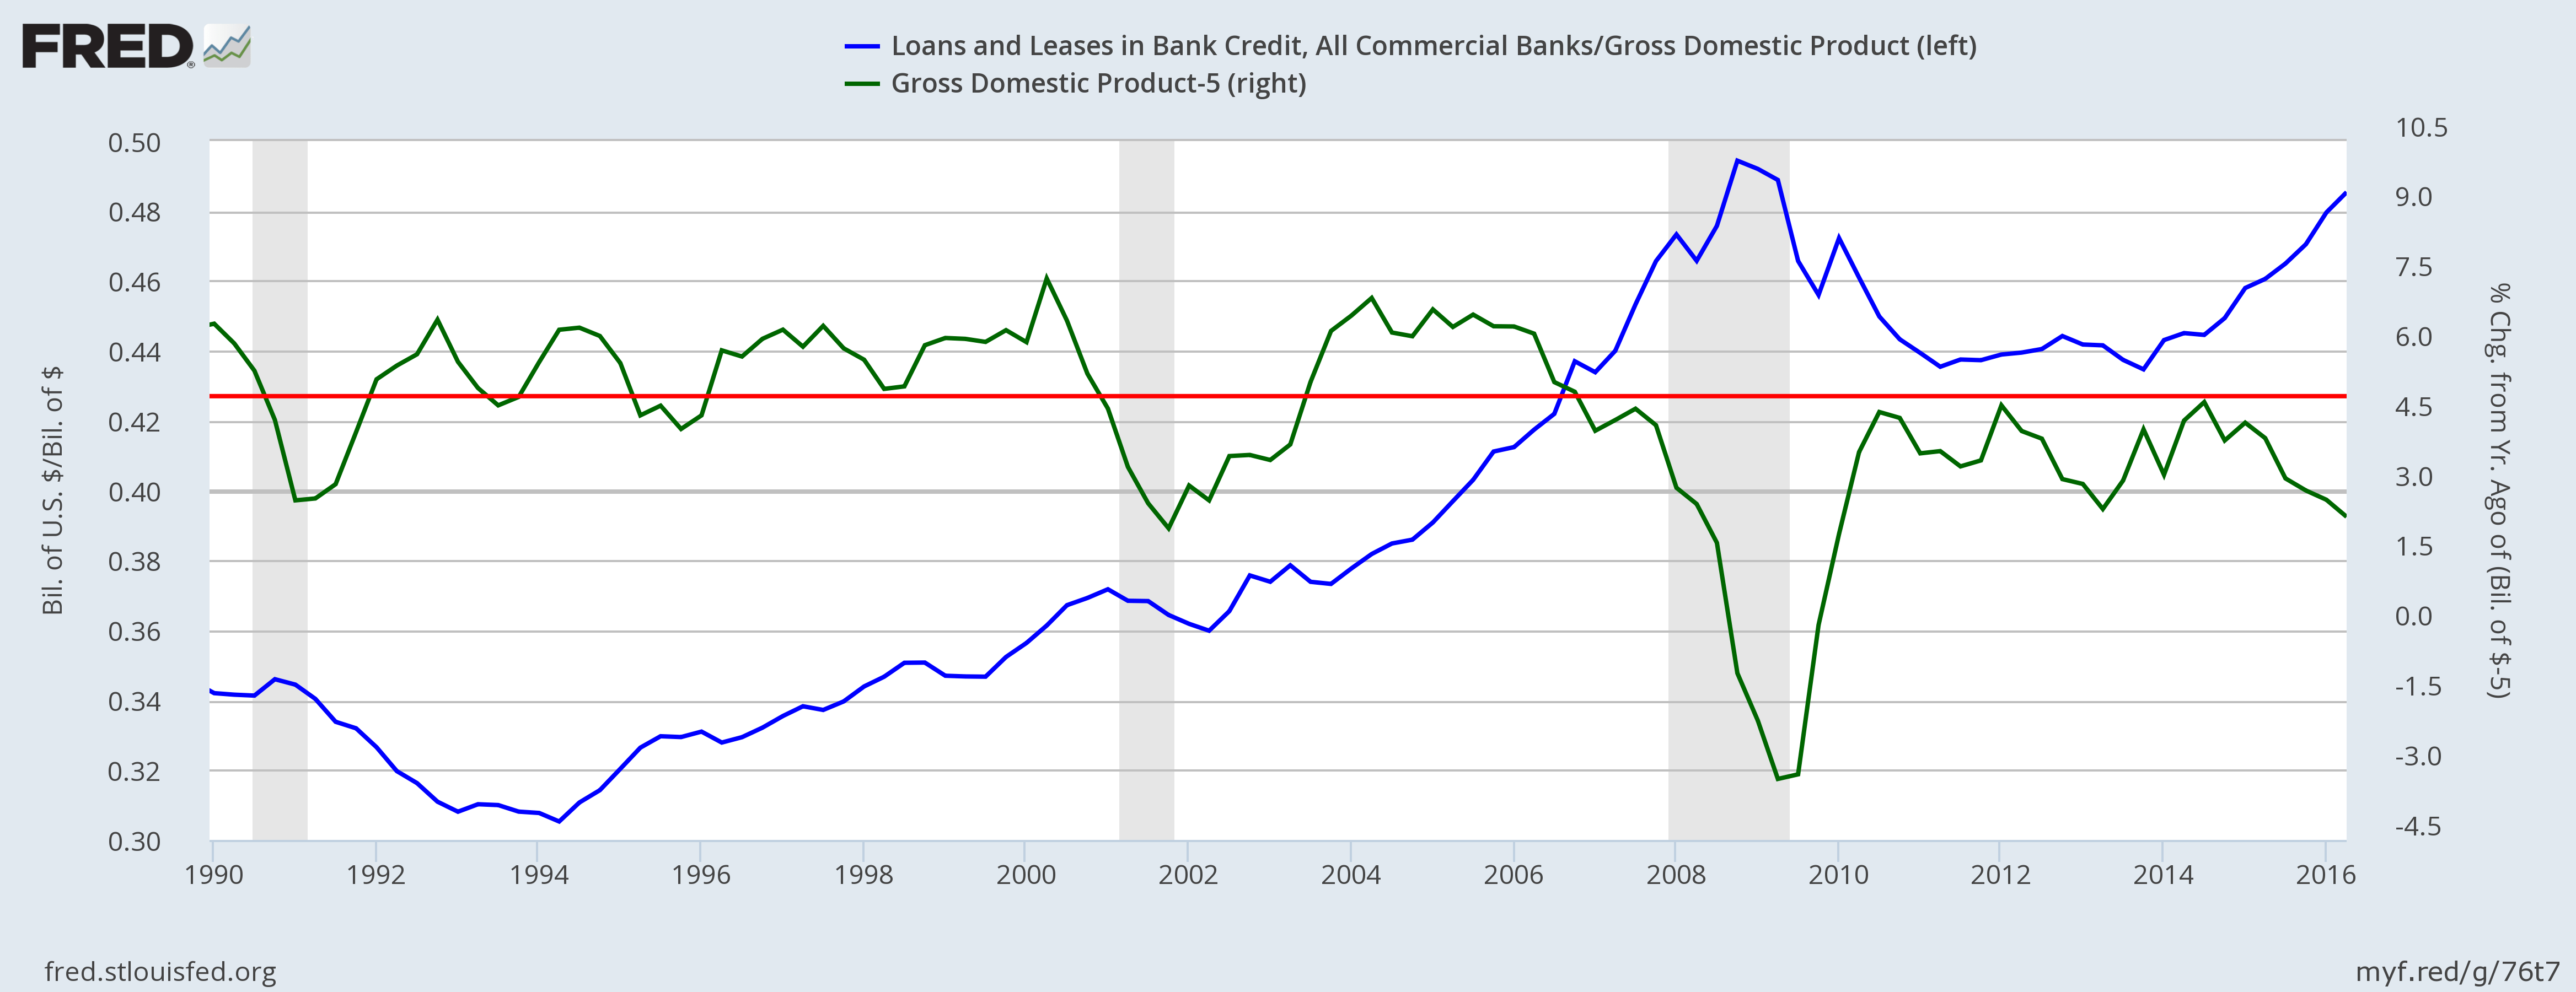 US Credit Growth & GDP Targeting